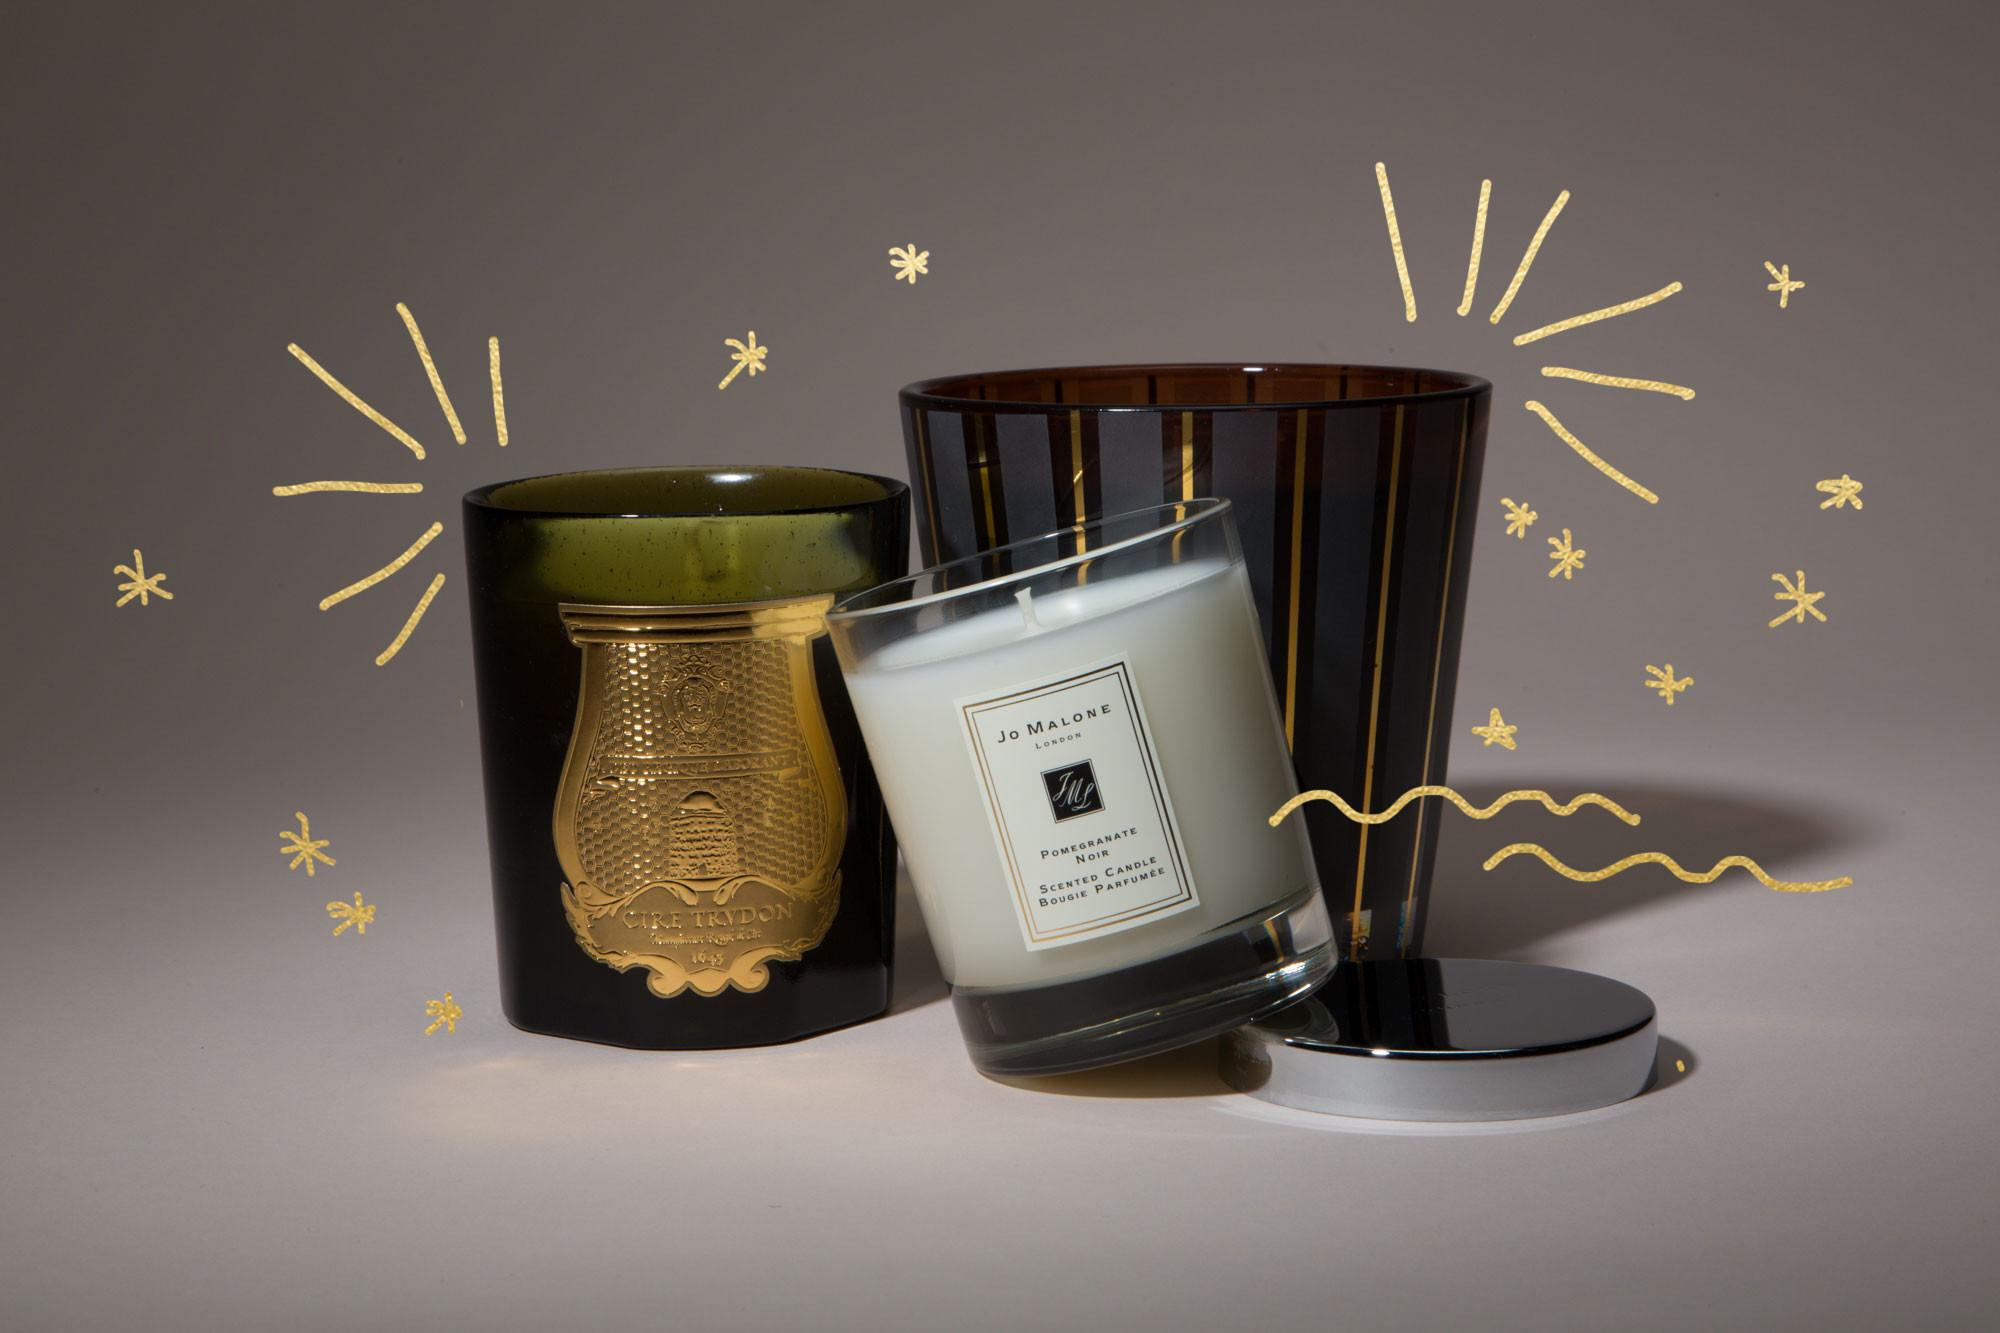 Ignited Our Burning Desire Luxury Candles Racked